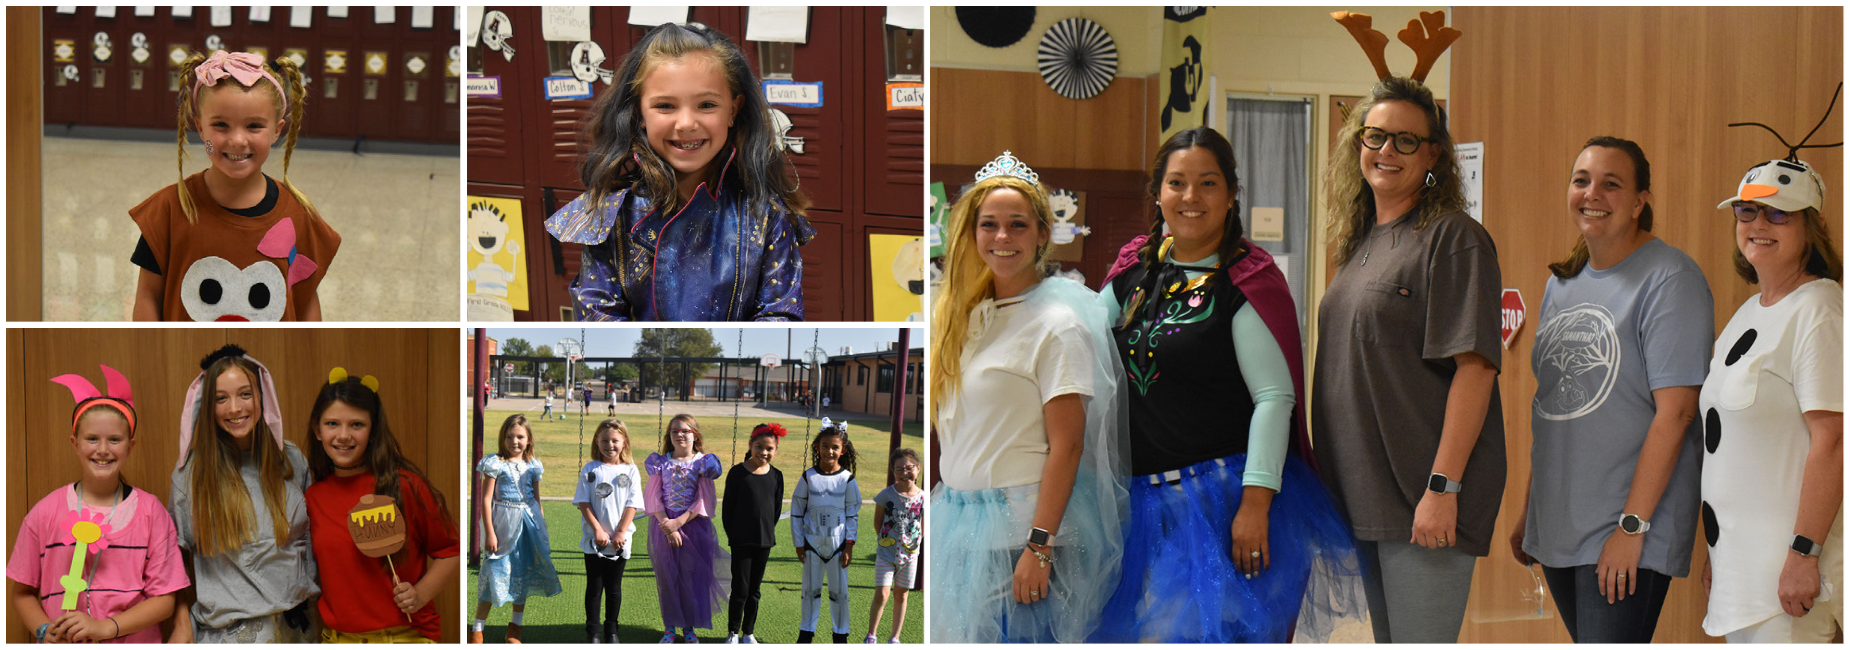 Elementary students and teachers dress for Halloween